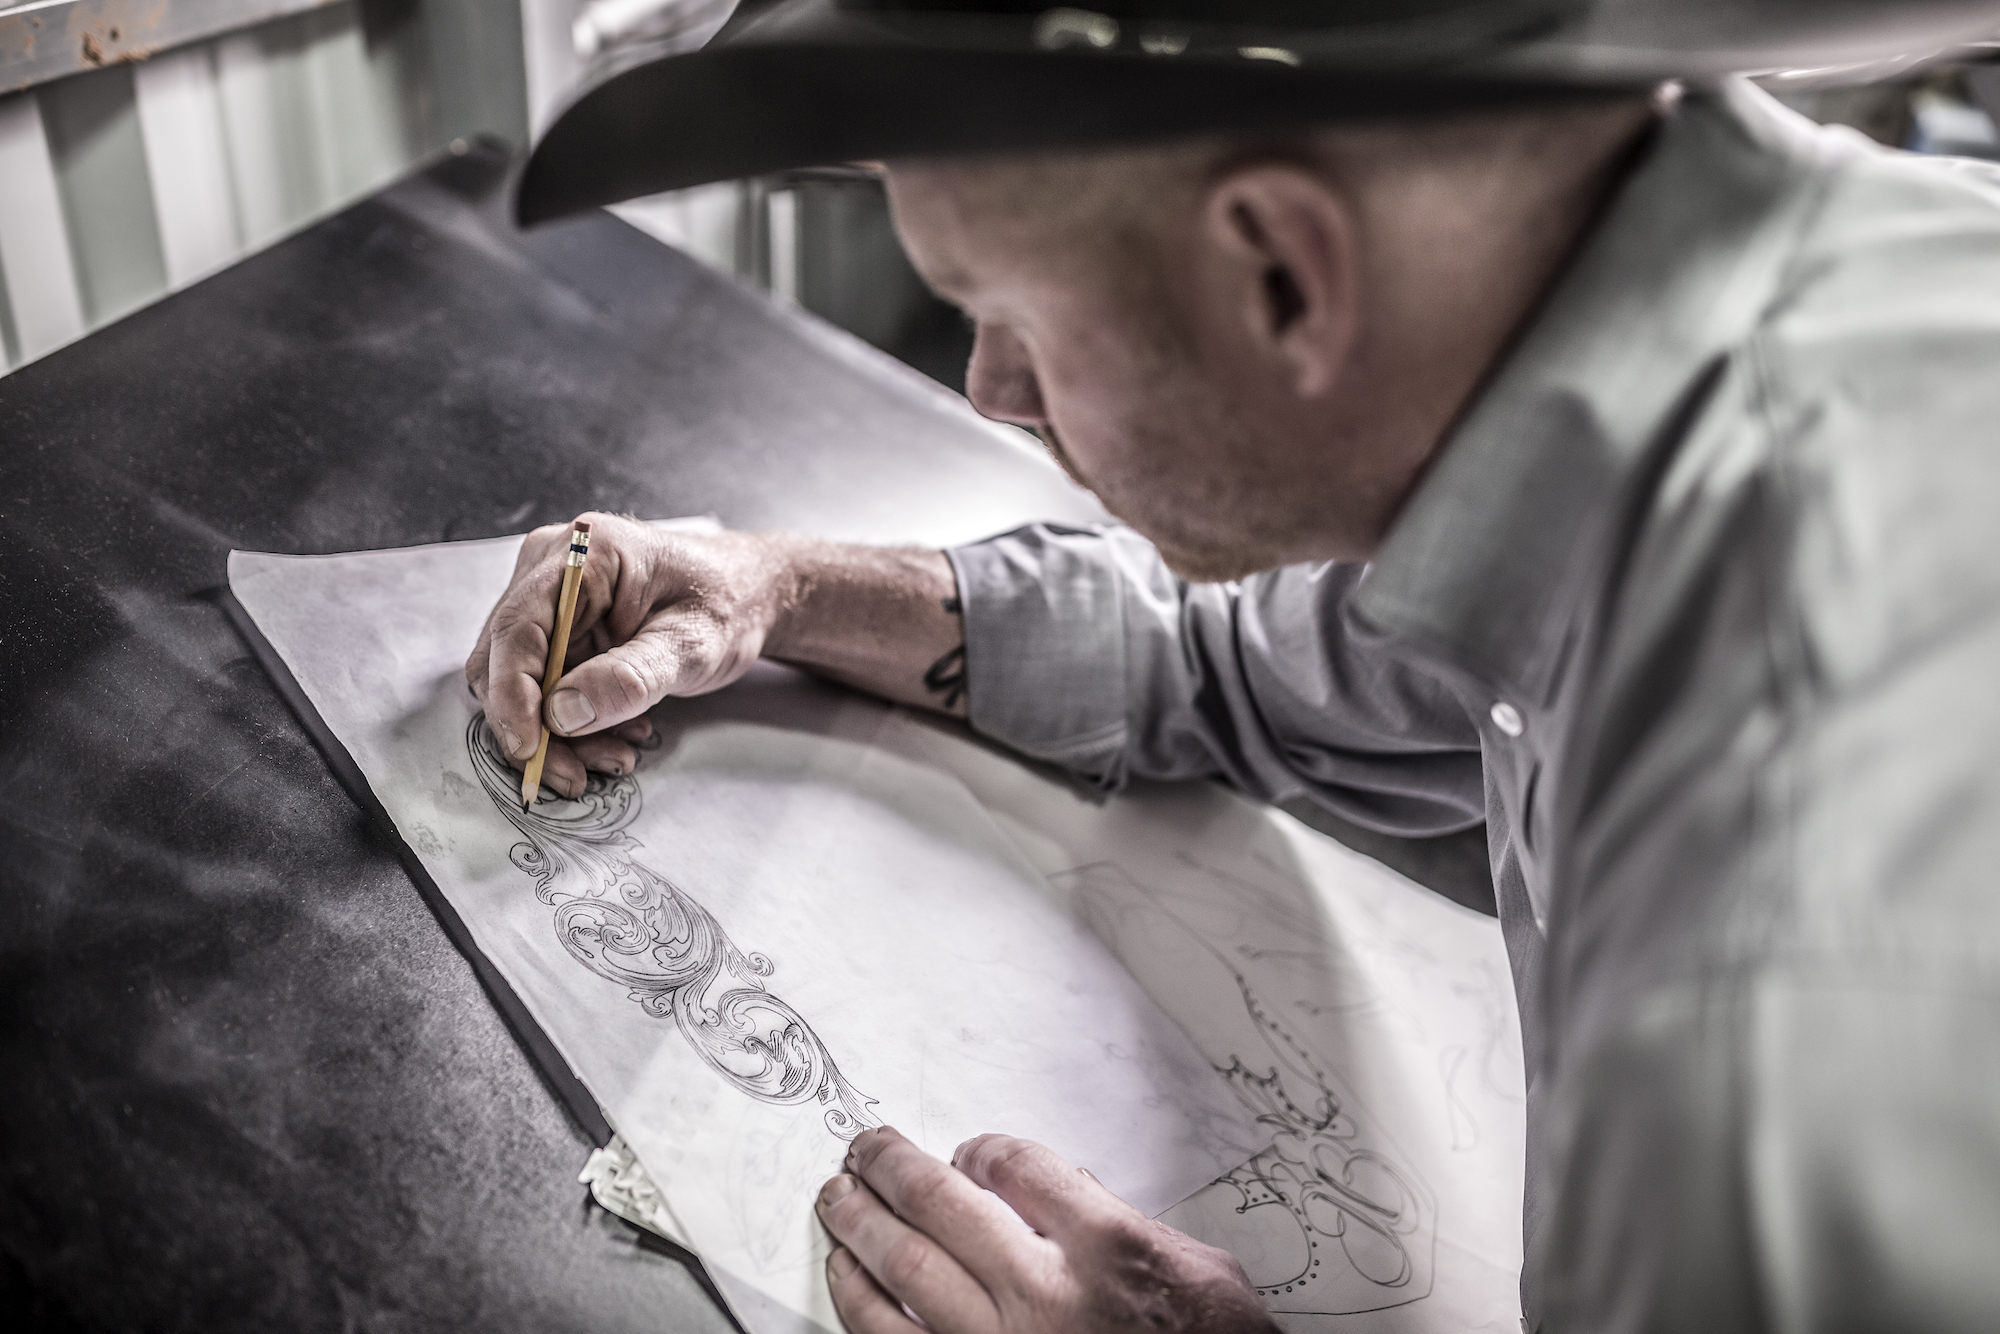 JW Brooks sketching out a custom hat design